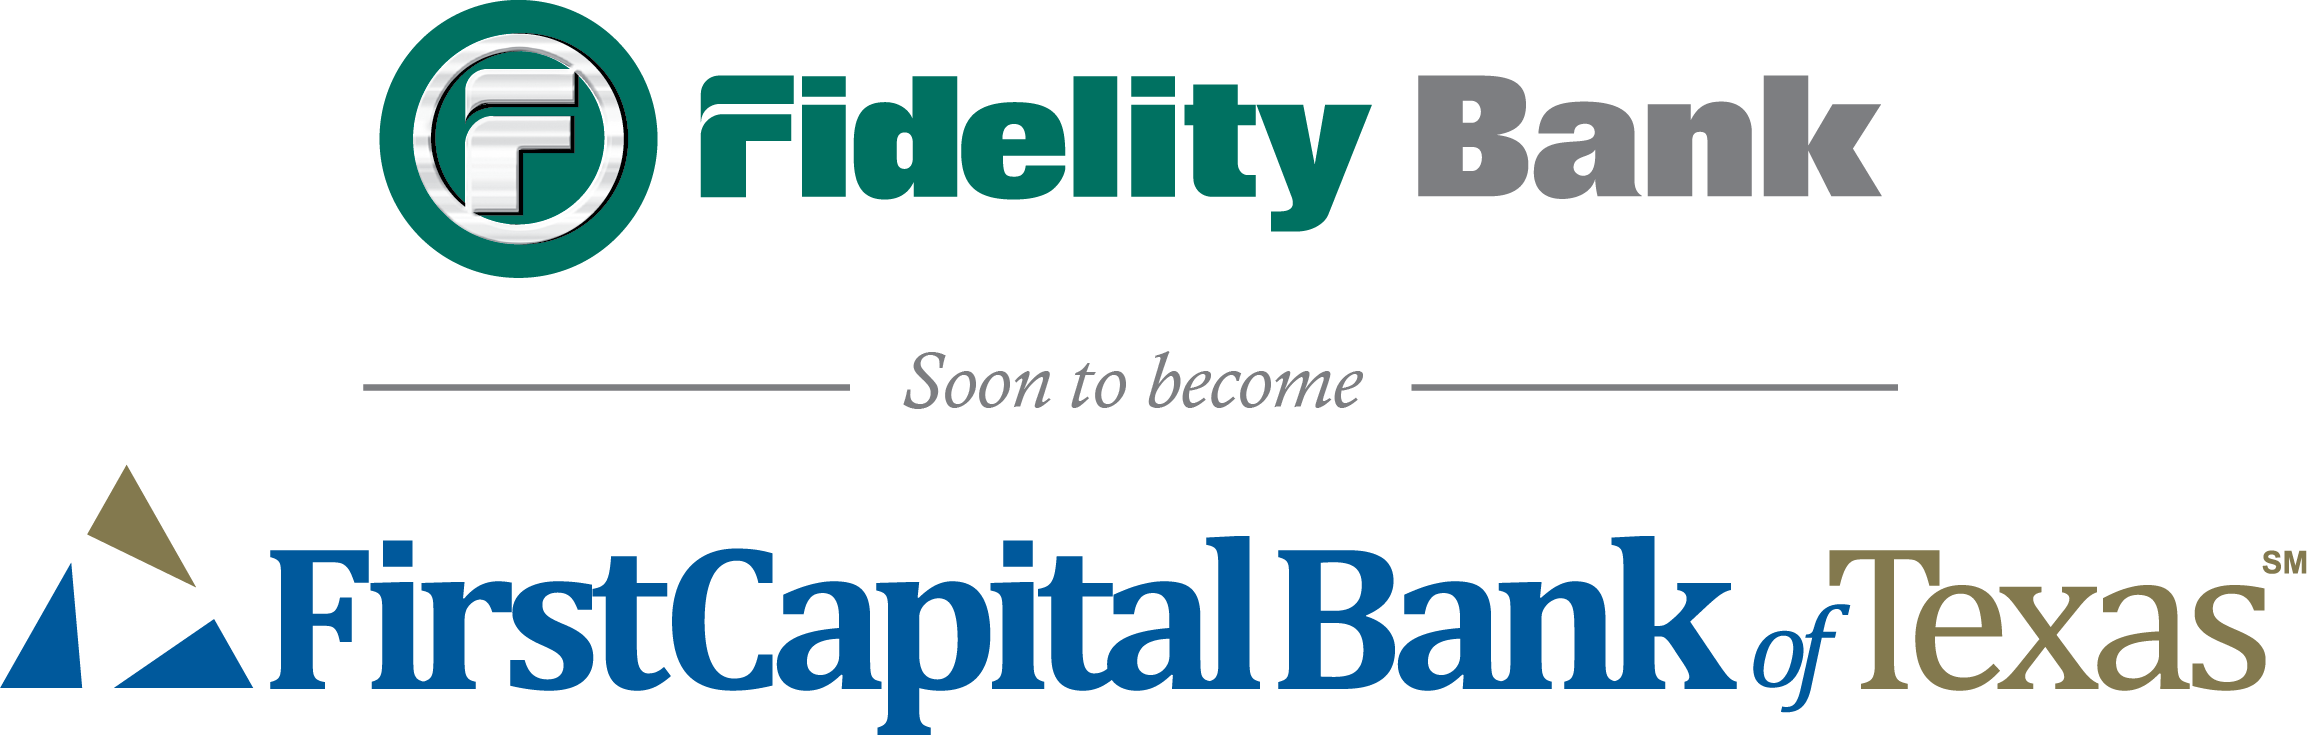 Fidelity Bank Auto Loan >> Firstcapital Bank Of Texas And Fidelity Bank Complete Merger